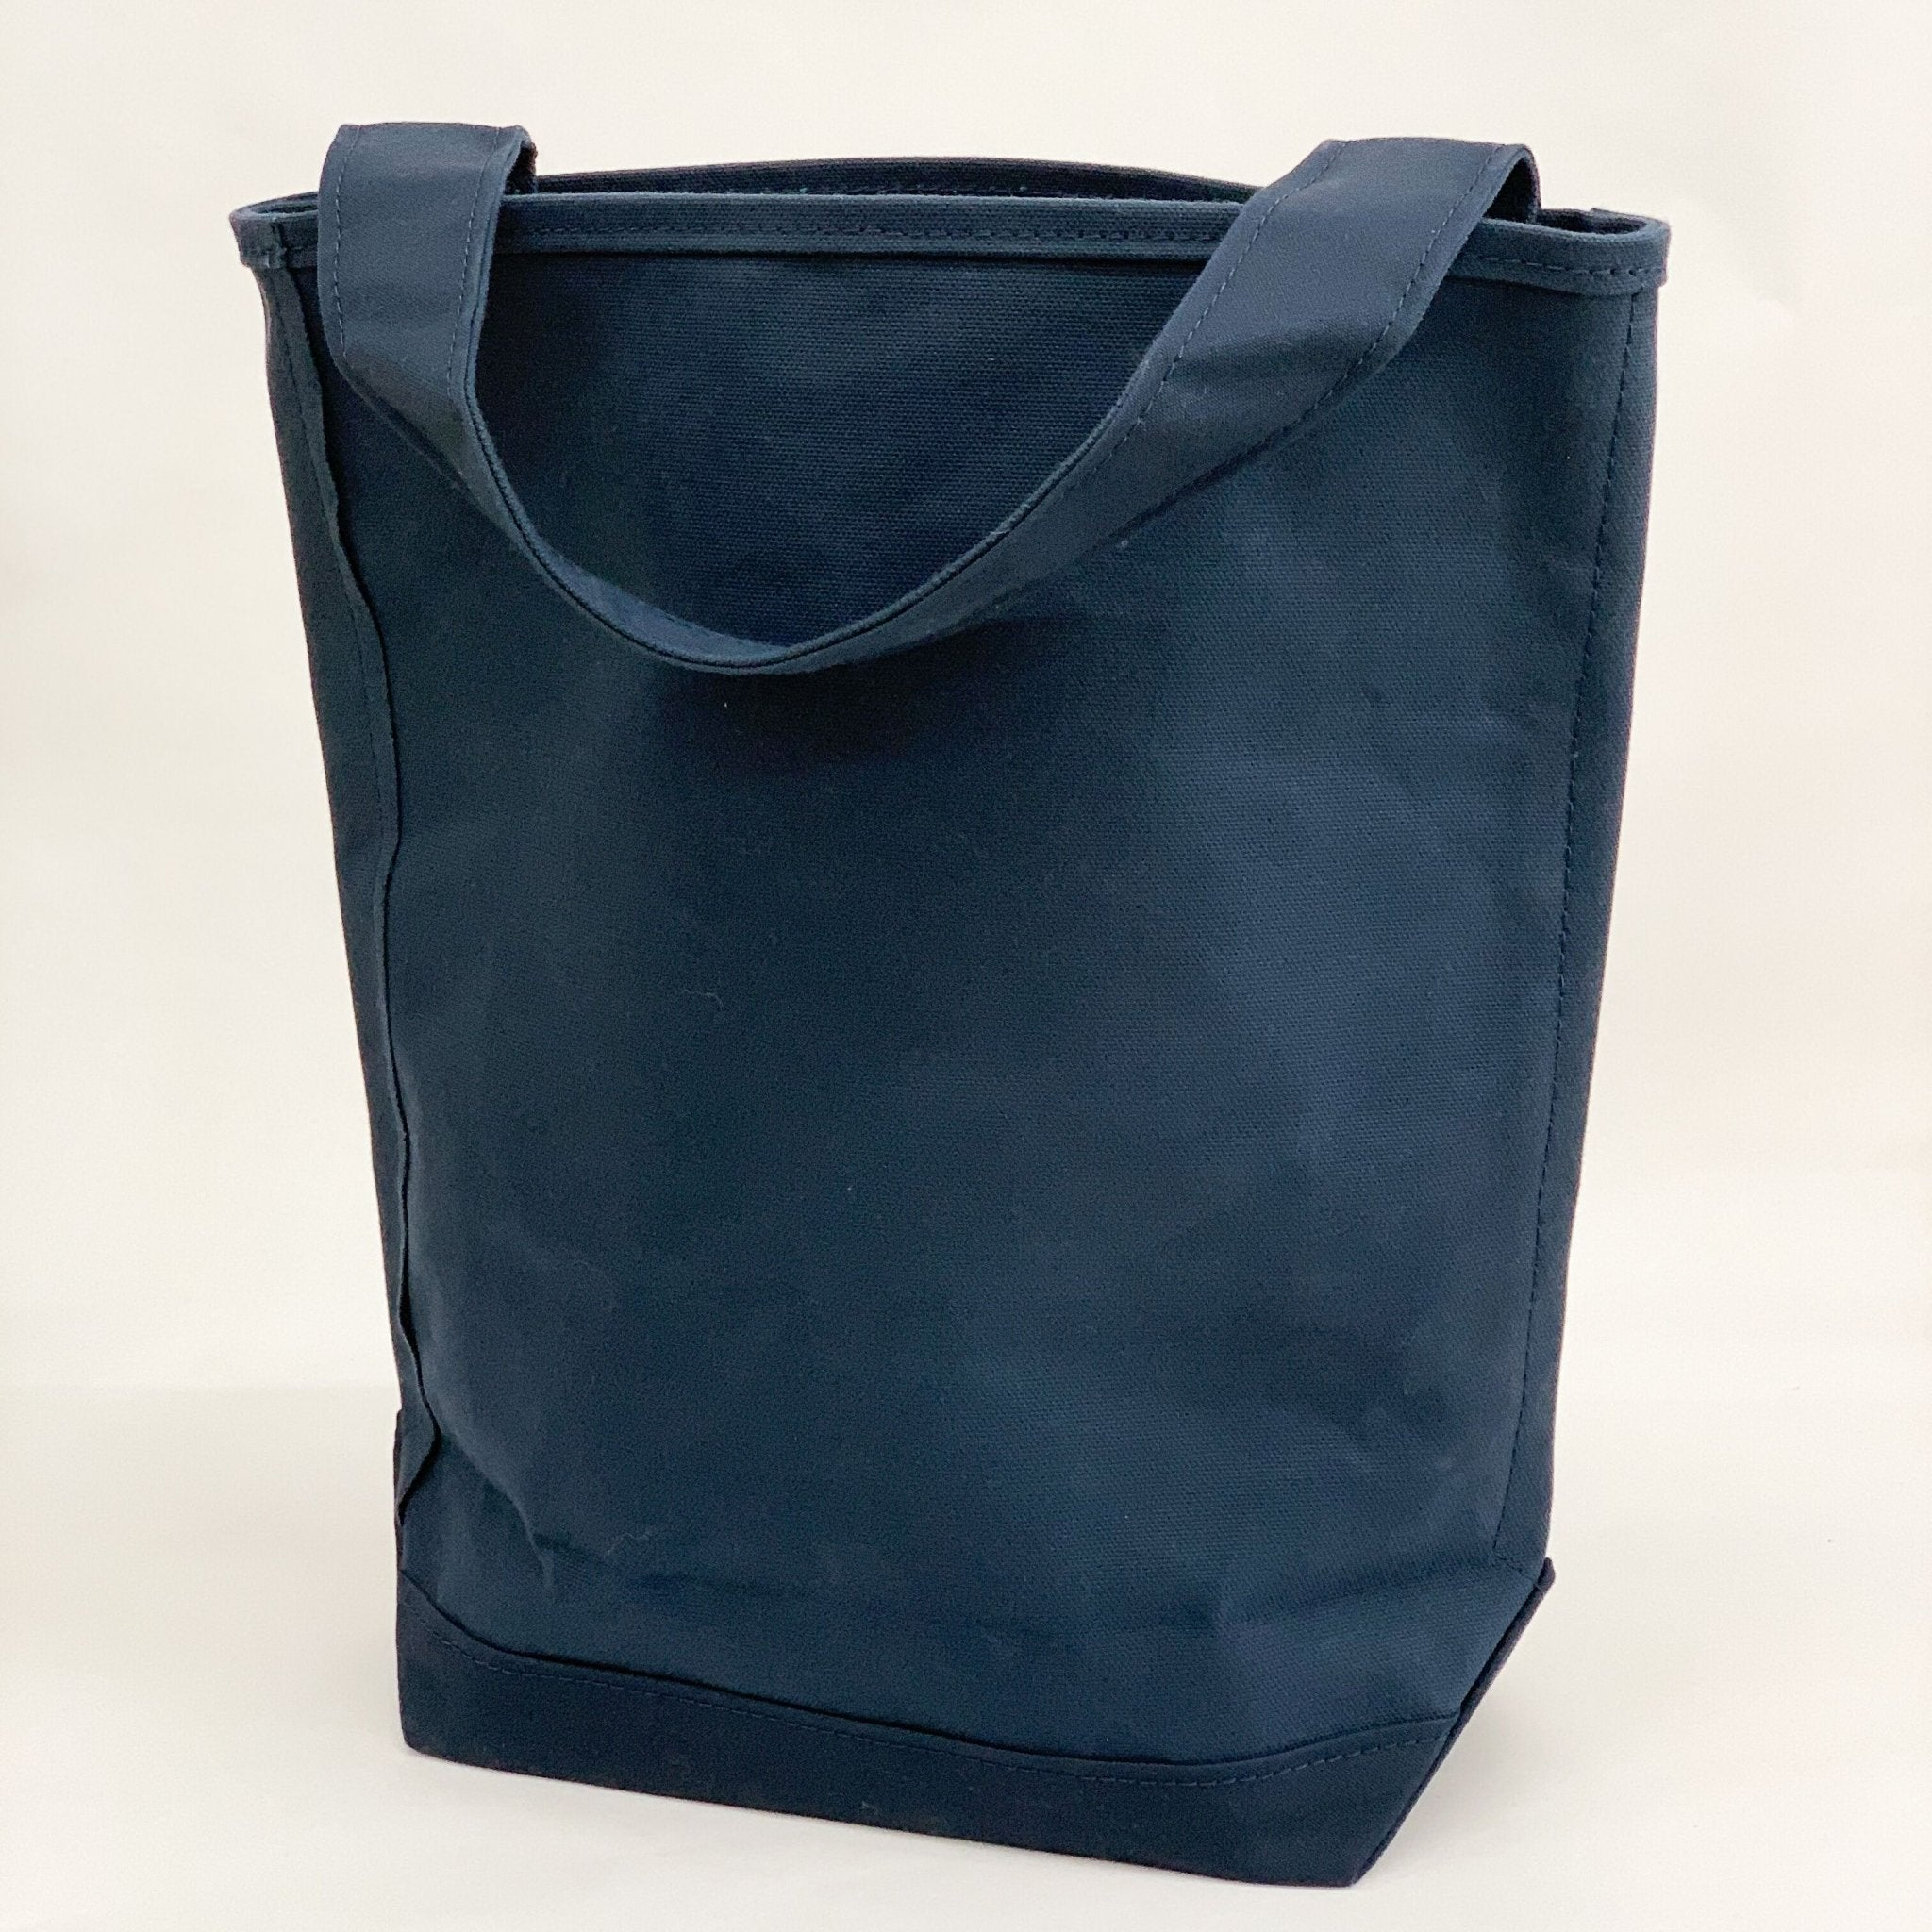 Tembea Canvas One Handle Bag - tortoise general store, oxford blue